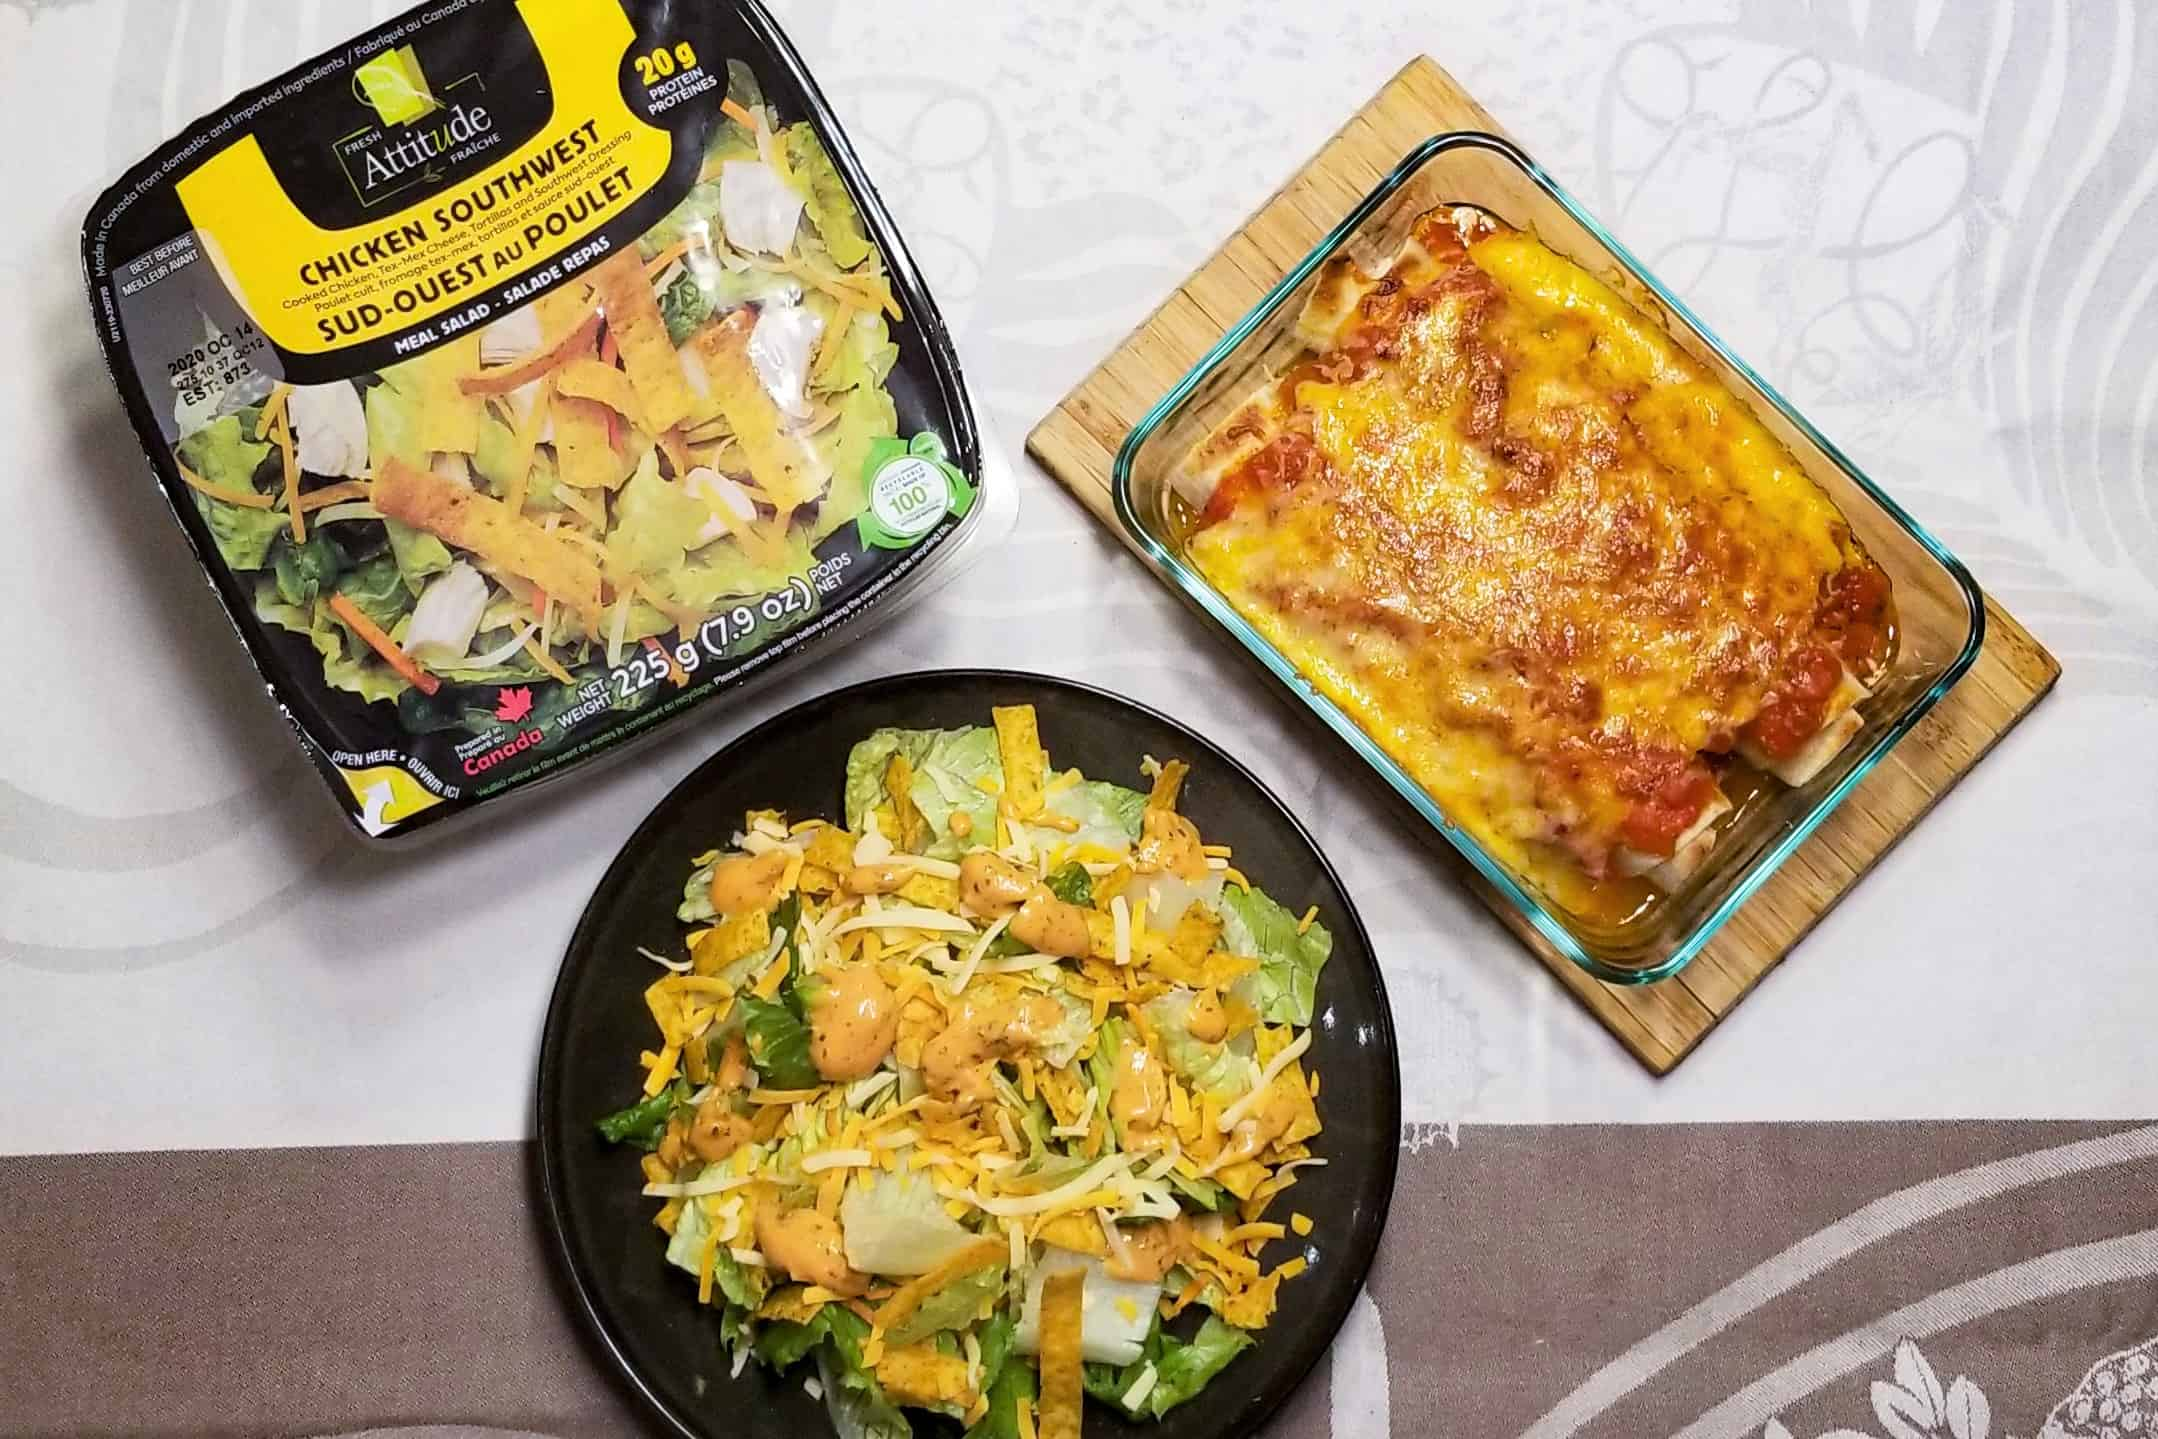 Super-easy Chicken Enchiladas and South-west salad